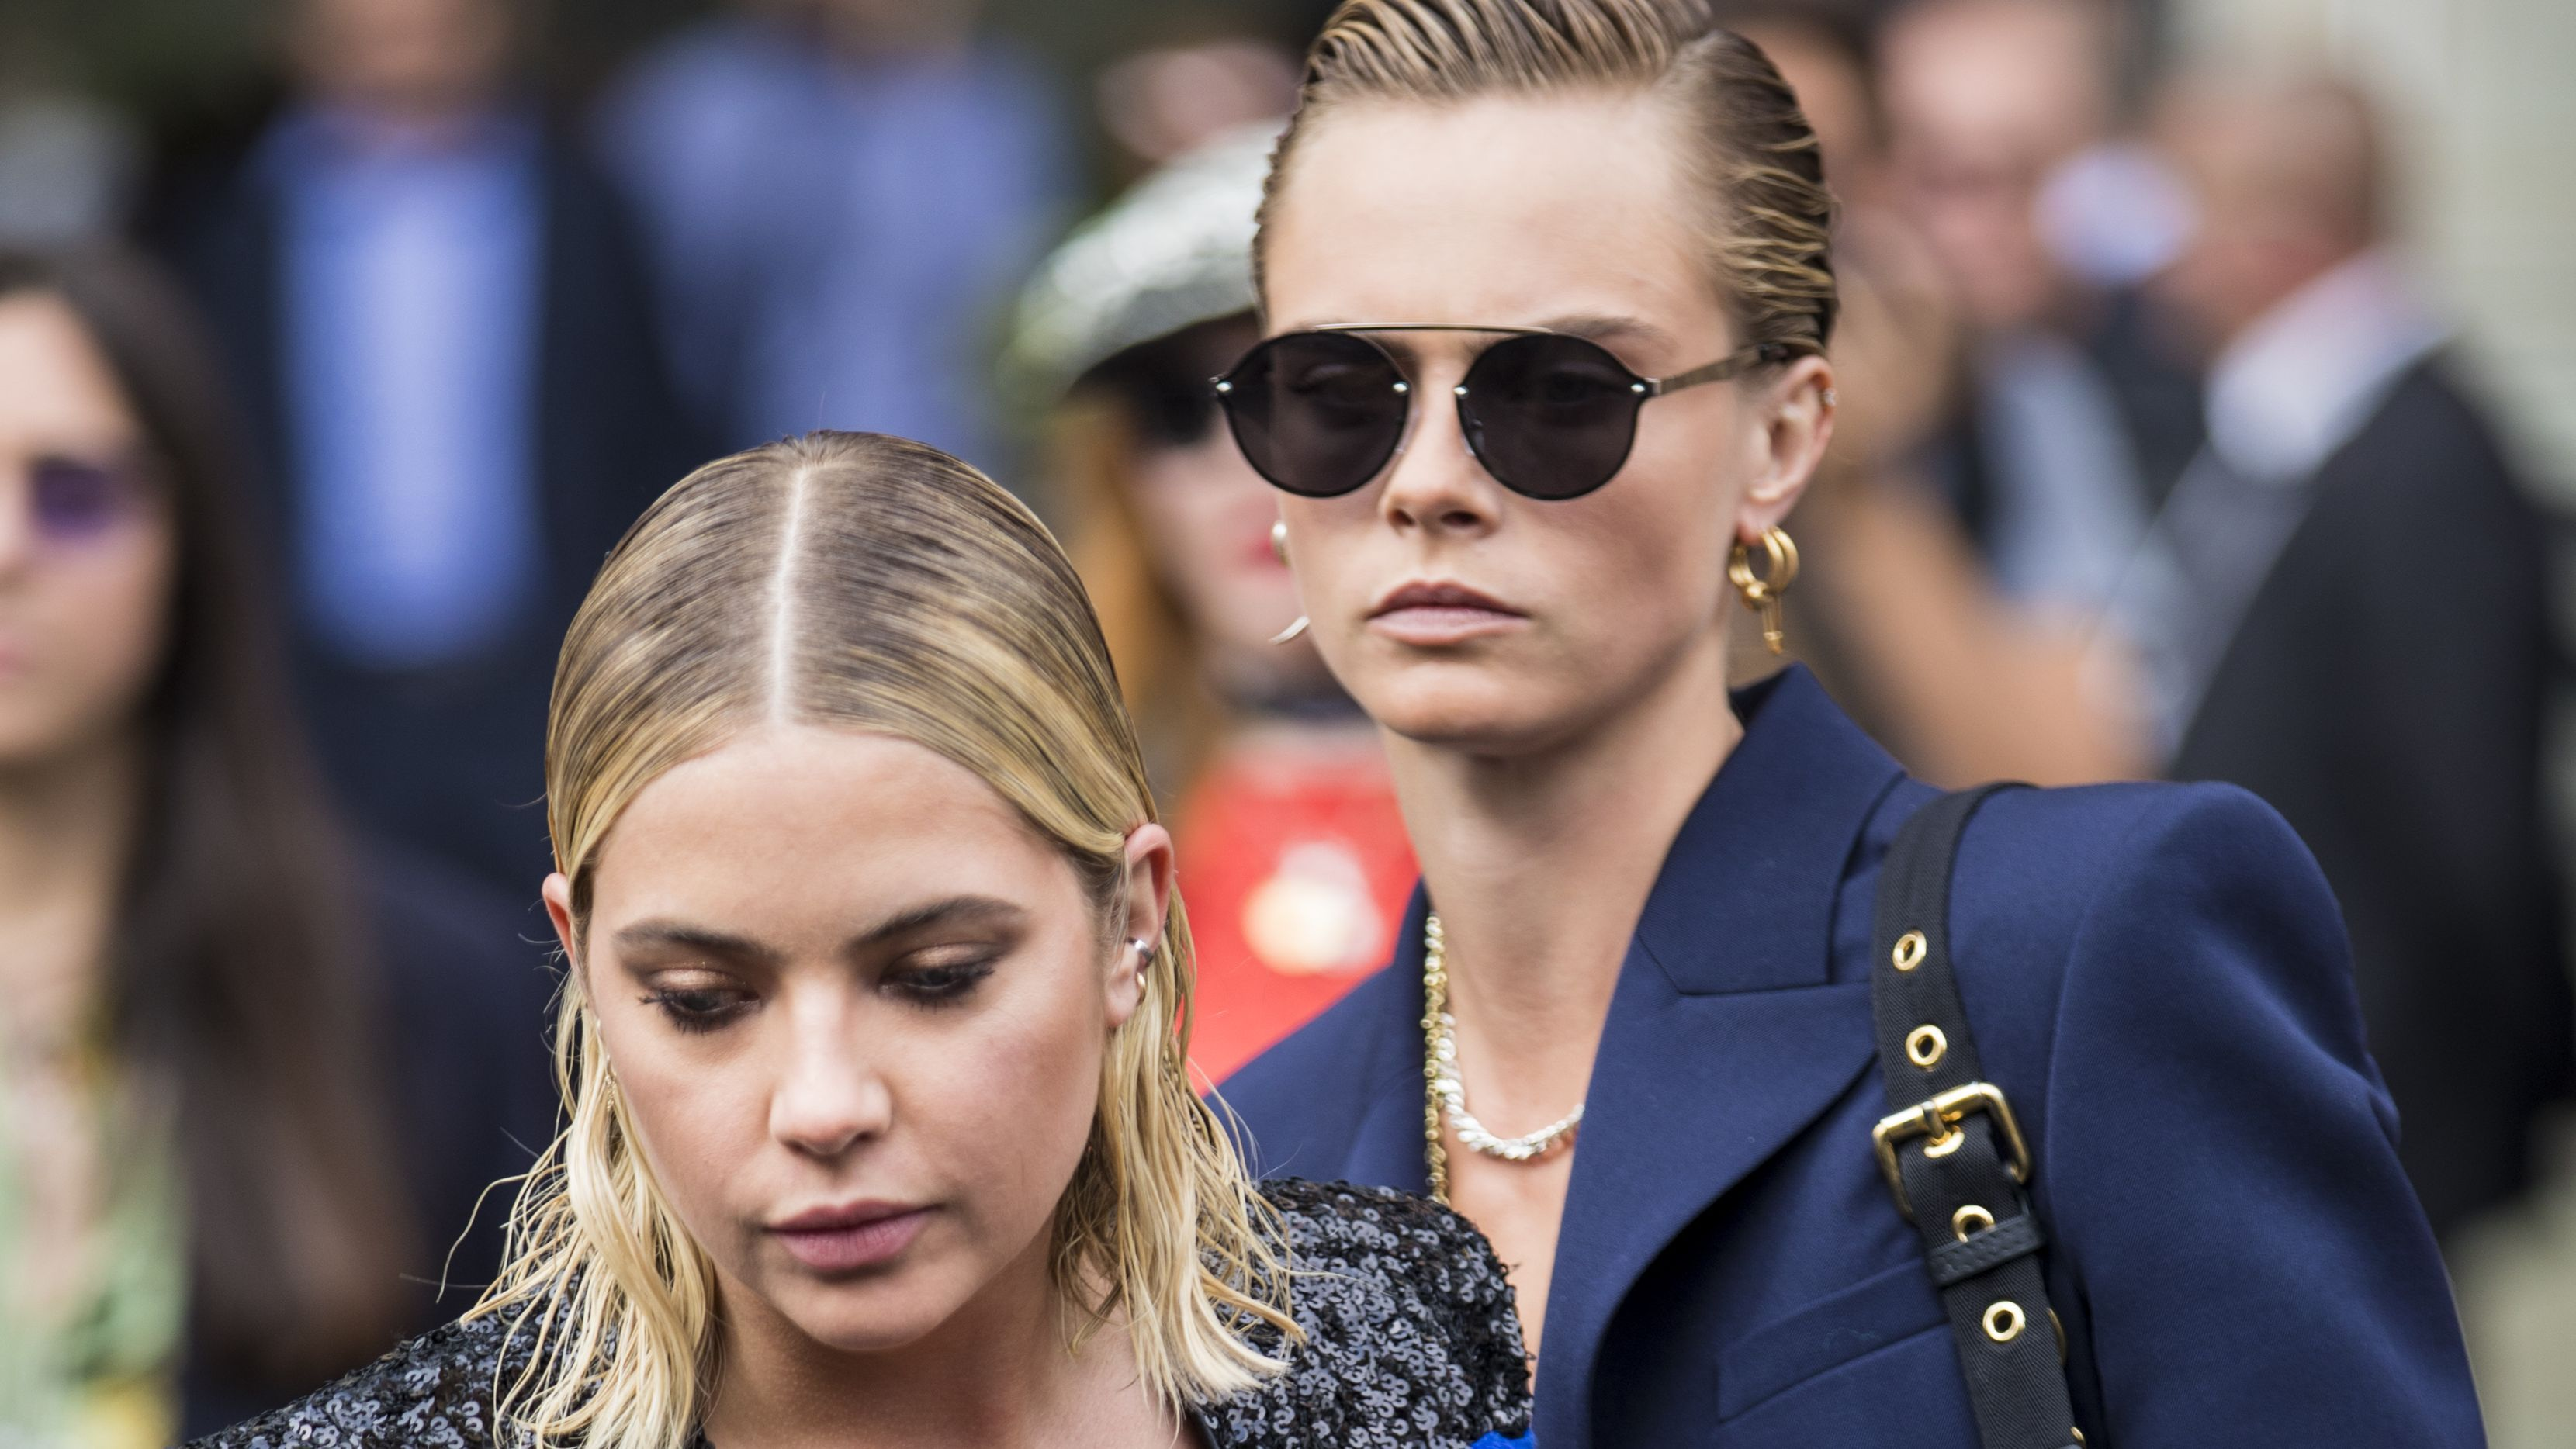 Cara Delevingne Opens Up About Protecting Her Sacred